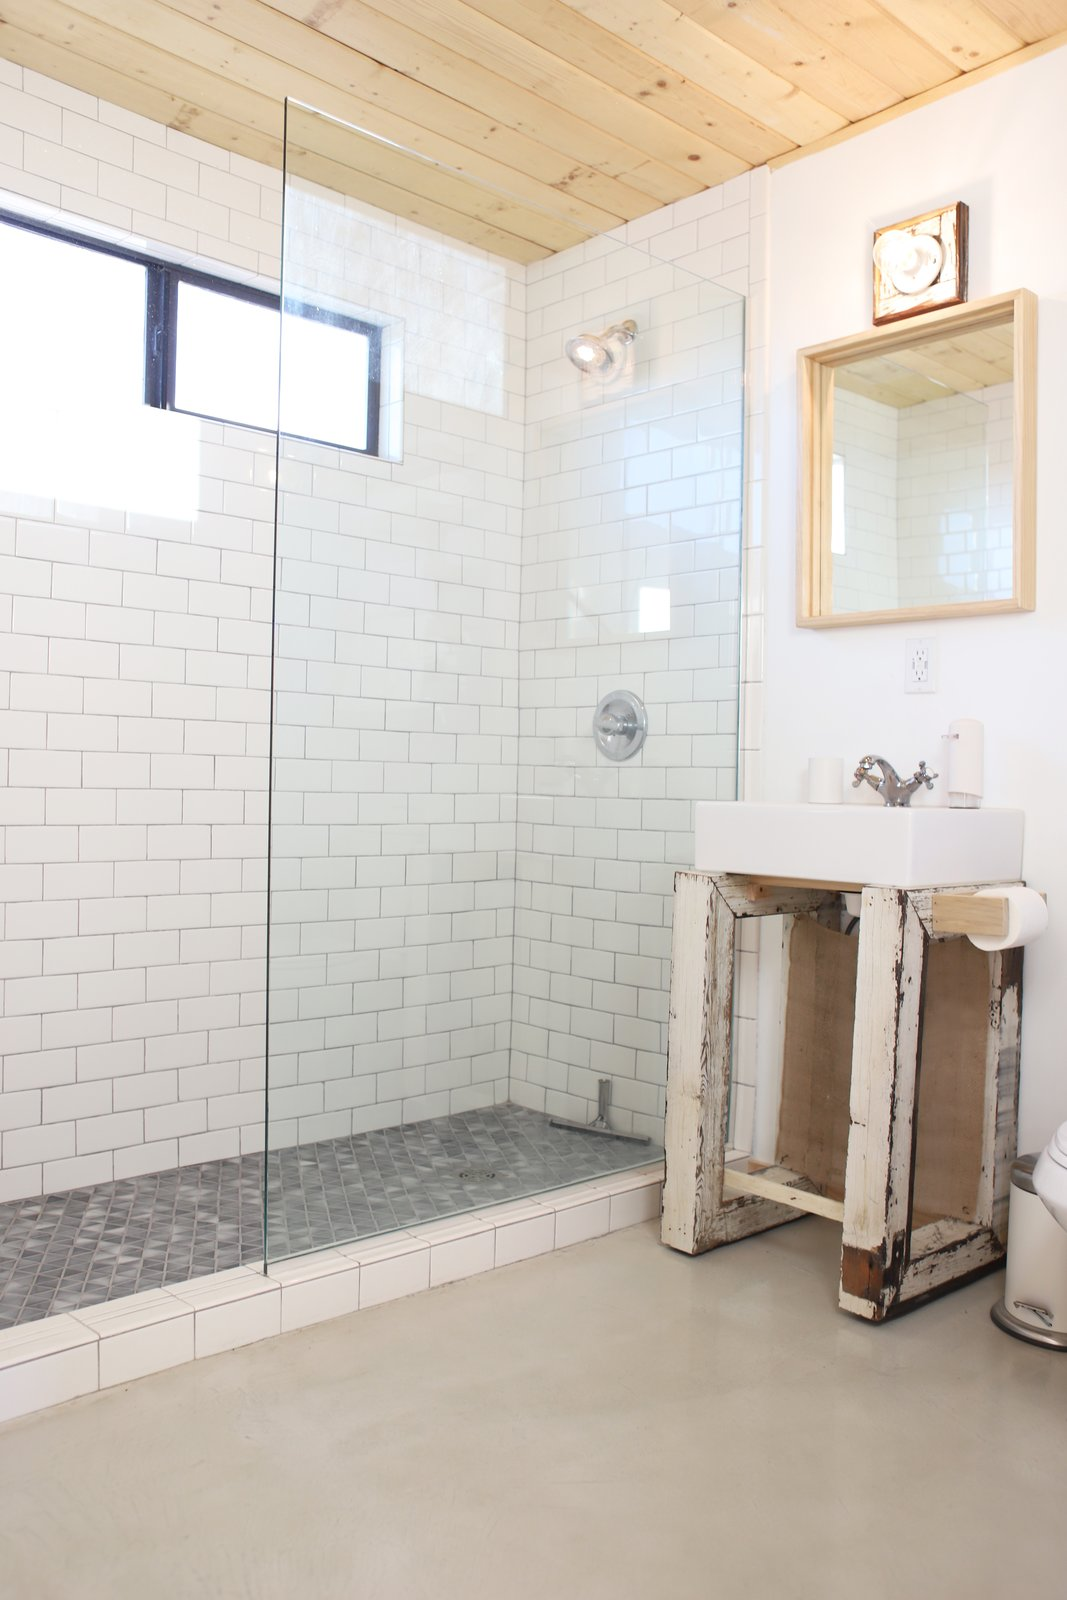 Bath, Pedestal, Subway Tile, Full, Open, and Wall A glass-enclosed shower helps increased the sense of space in the tiny bathroom.  Best Bath Subway Tile Open Photos from A Couple Buy a Collapsing Cabin For $7K in Joshua Tree and Revamp it Into a Desert Oasis